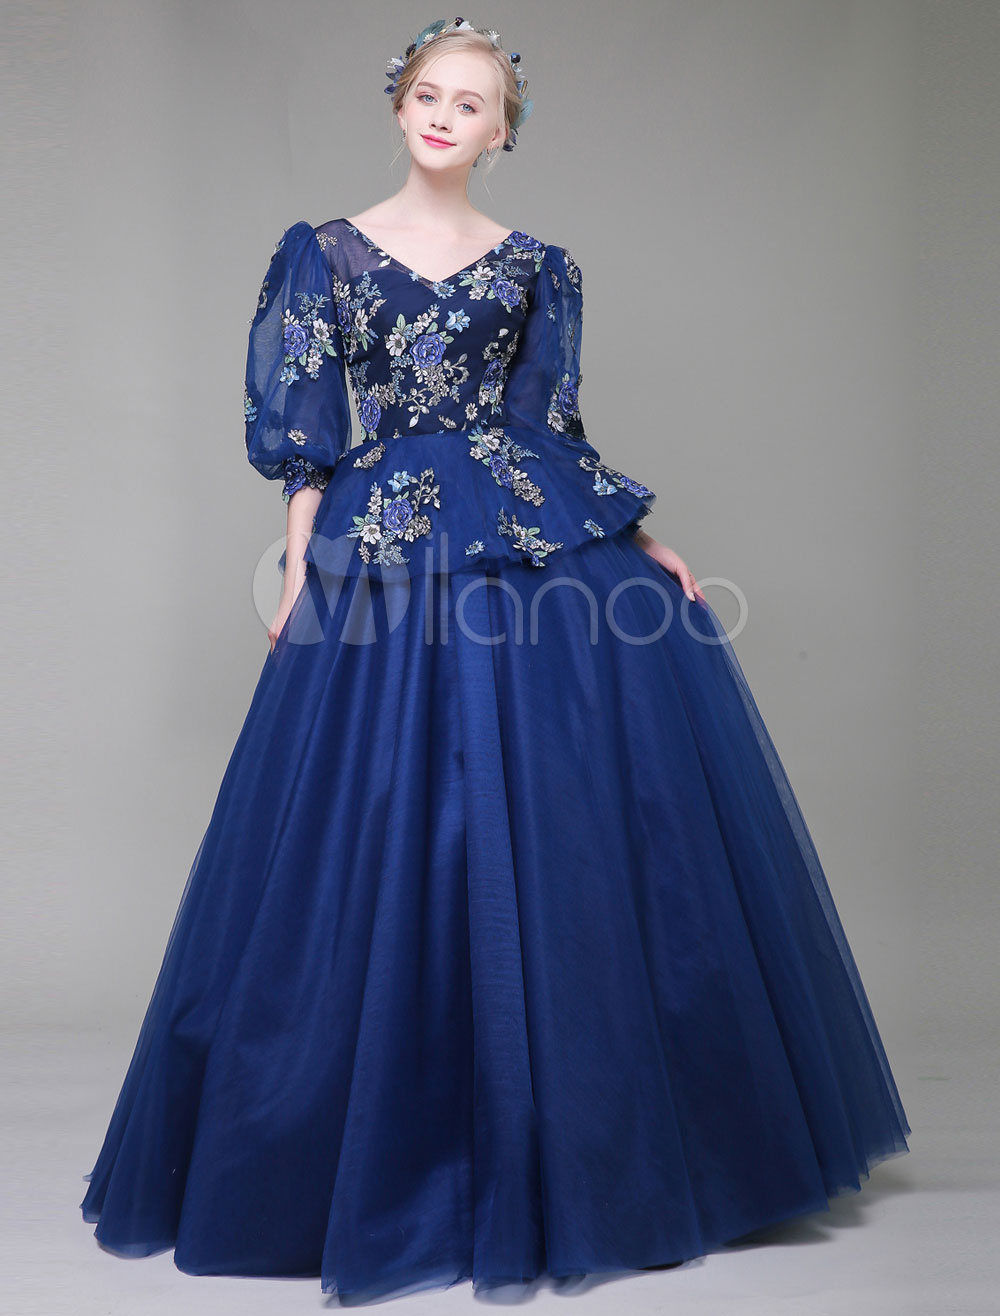 Luxury Quinceanera Dresses Dark Navy V Neck Half Sleeve Floral Print Tulle Floor Length Princess Pageant Dresses